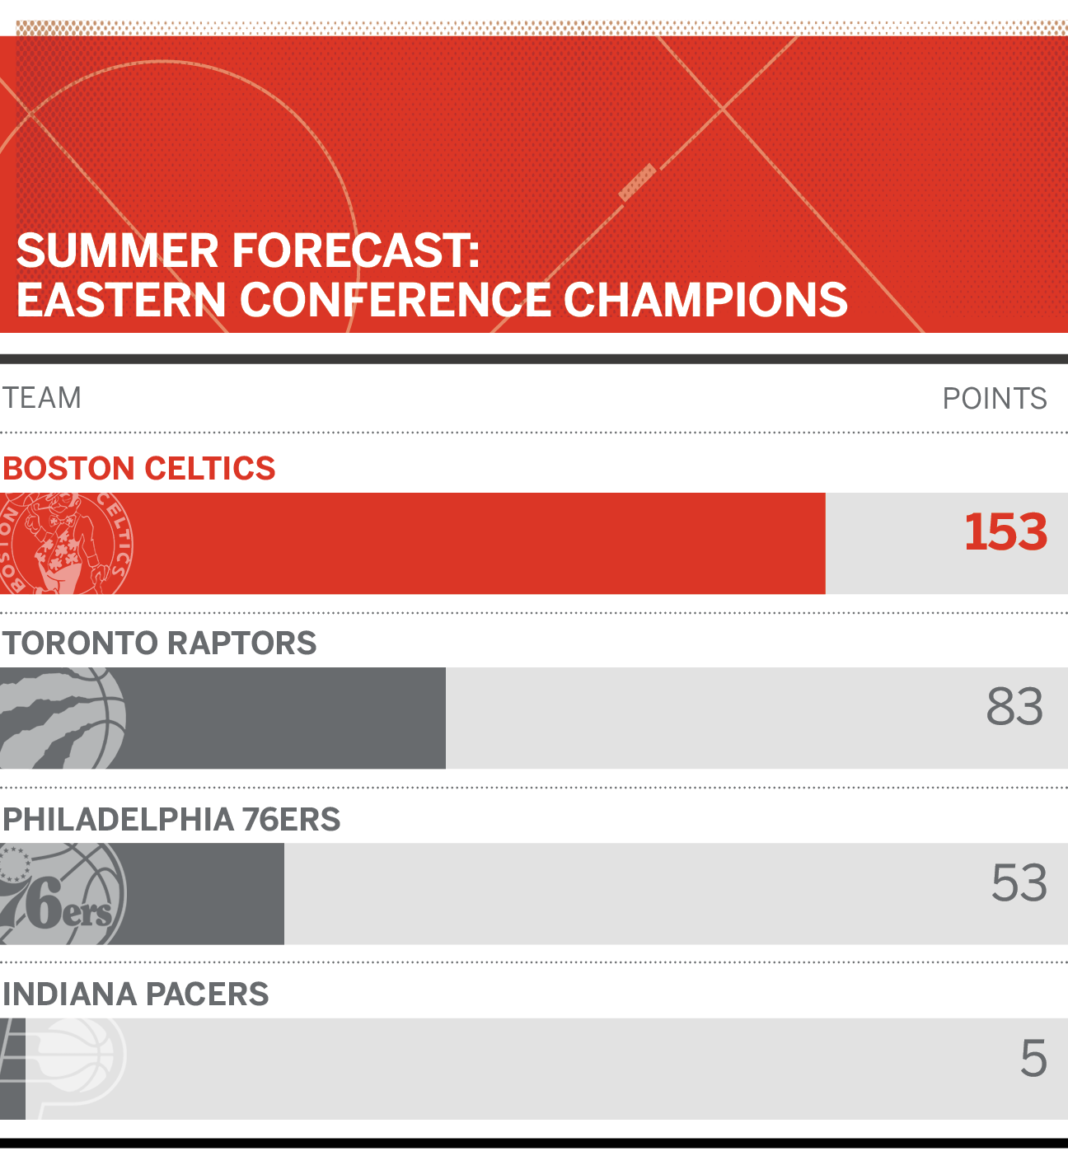 Predicting contenders for East, West and NBA crowns